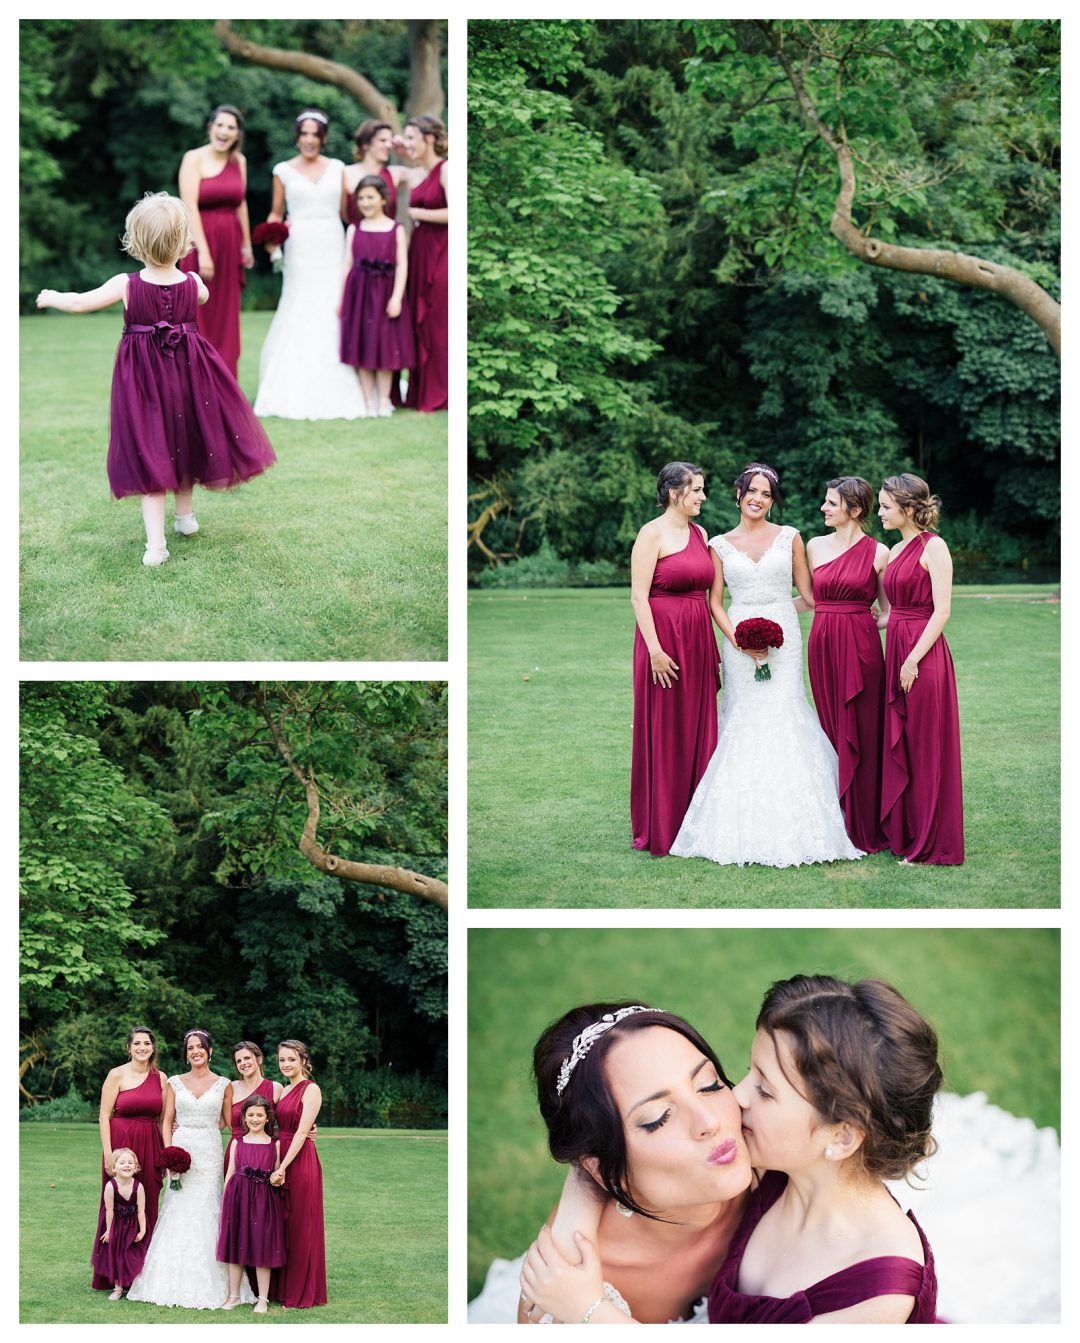 Matt & Laura's Wedding - weddings - nkimphotogrphy com notting hill 0528 1